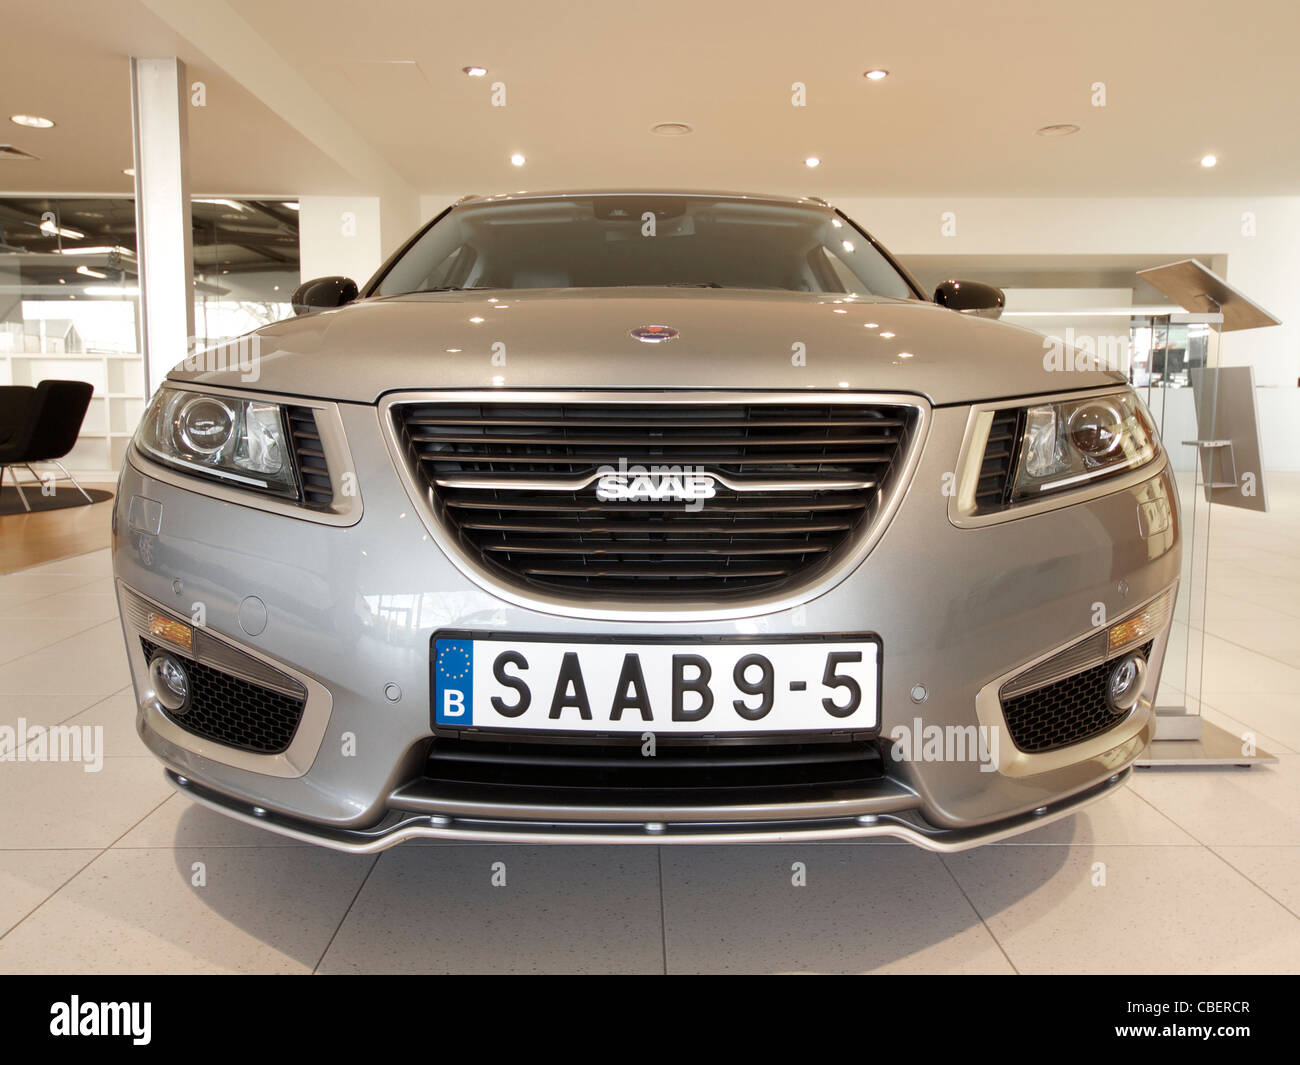 2011 Saab 9-5 front view, the latest model of the troubled car manufacturer, and possibly the last model ever. - Stock Image